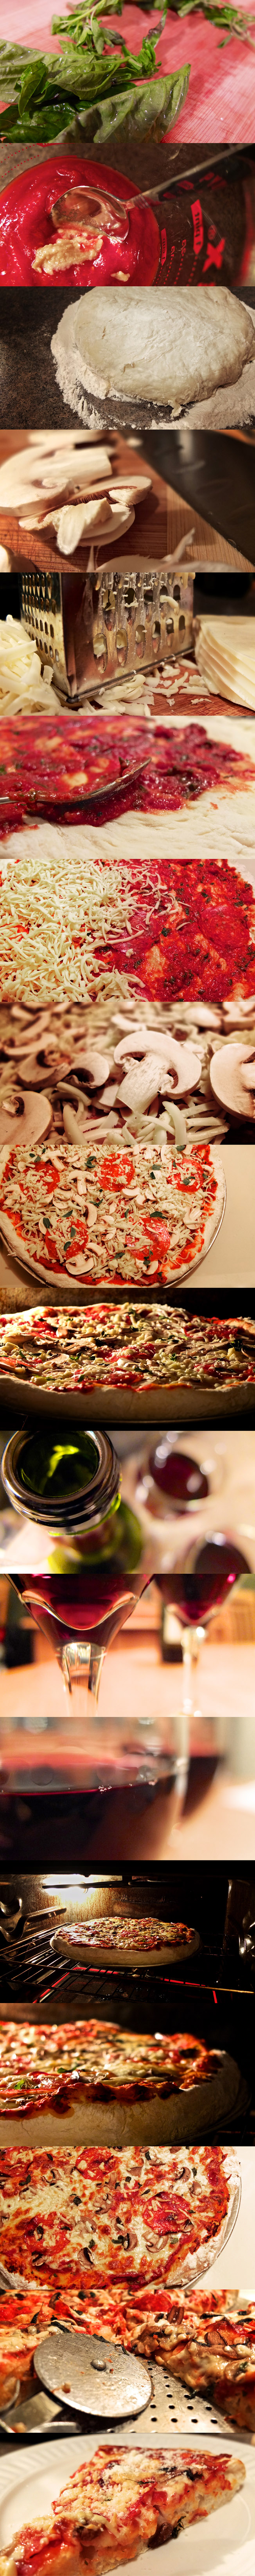 Steps to the Perfect Pizza